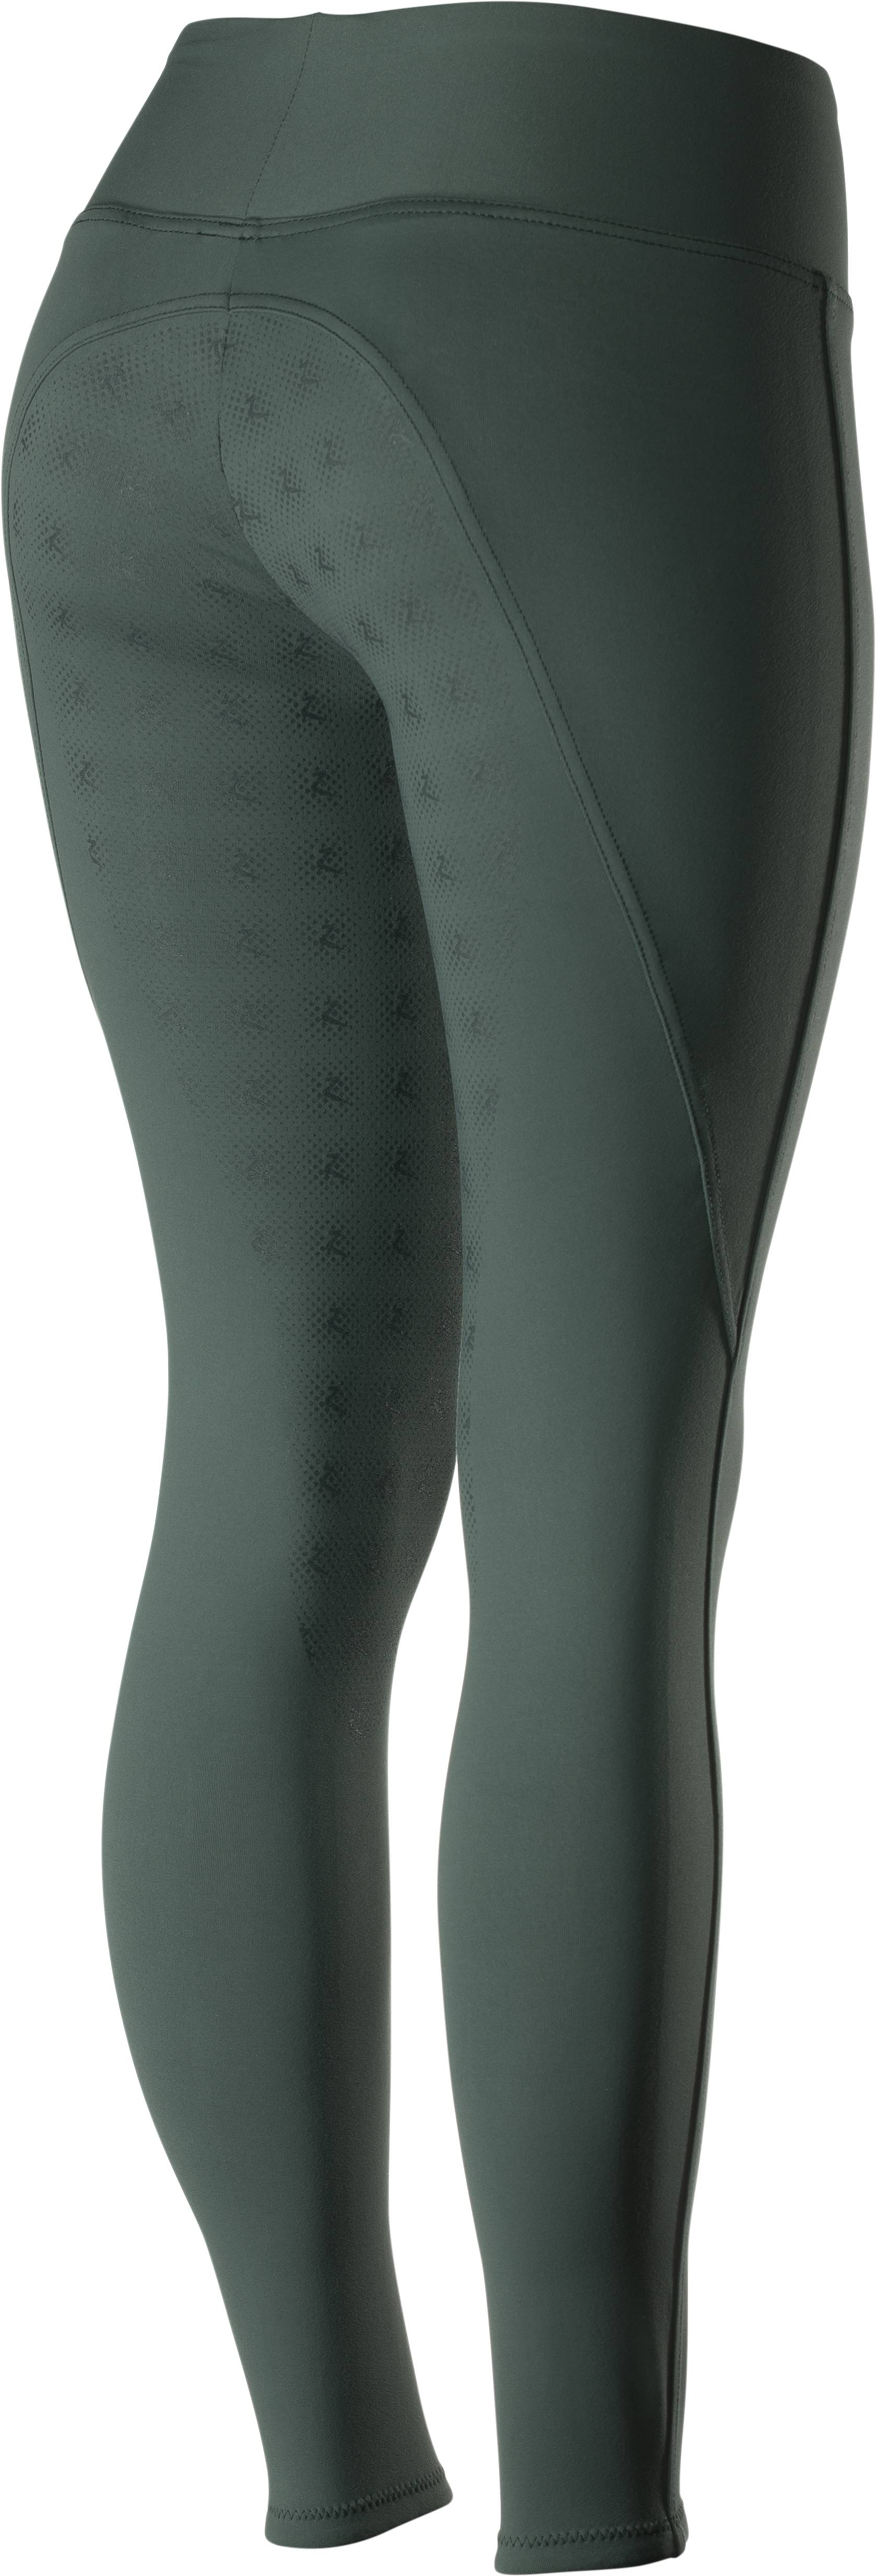 Horze Juliet HyPer Flex Tights- Ladies, Full Seat